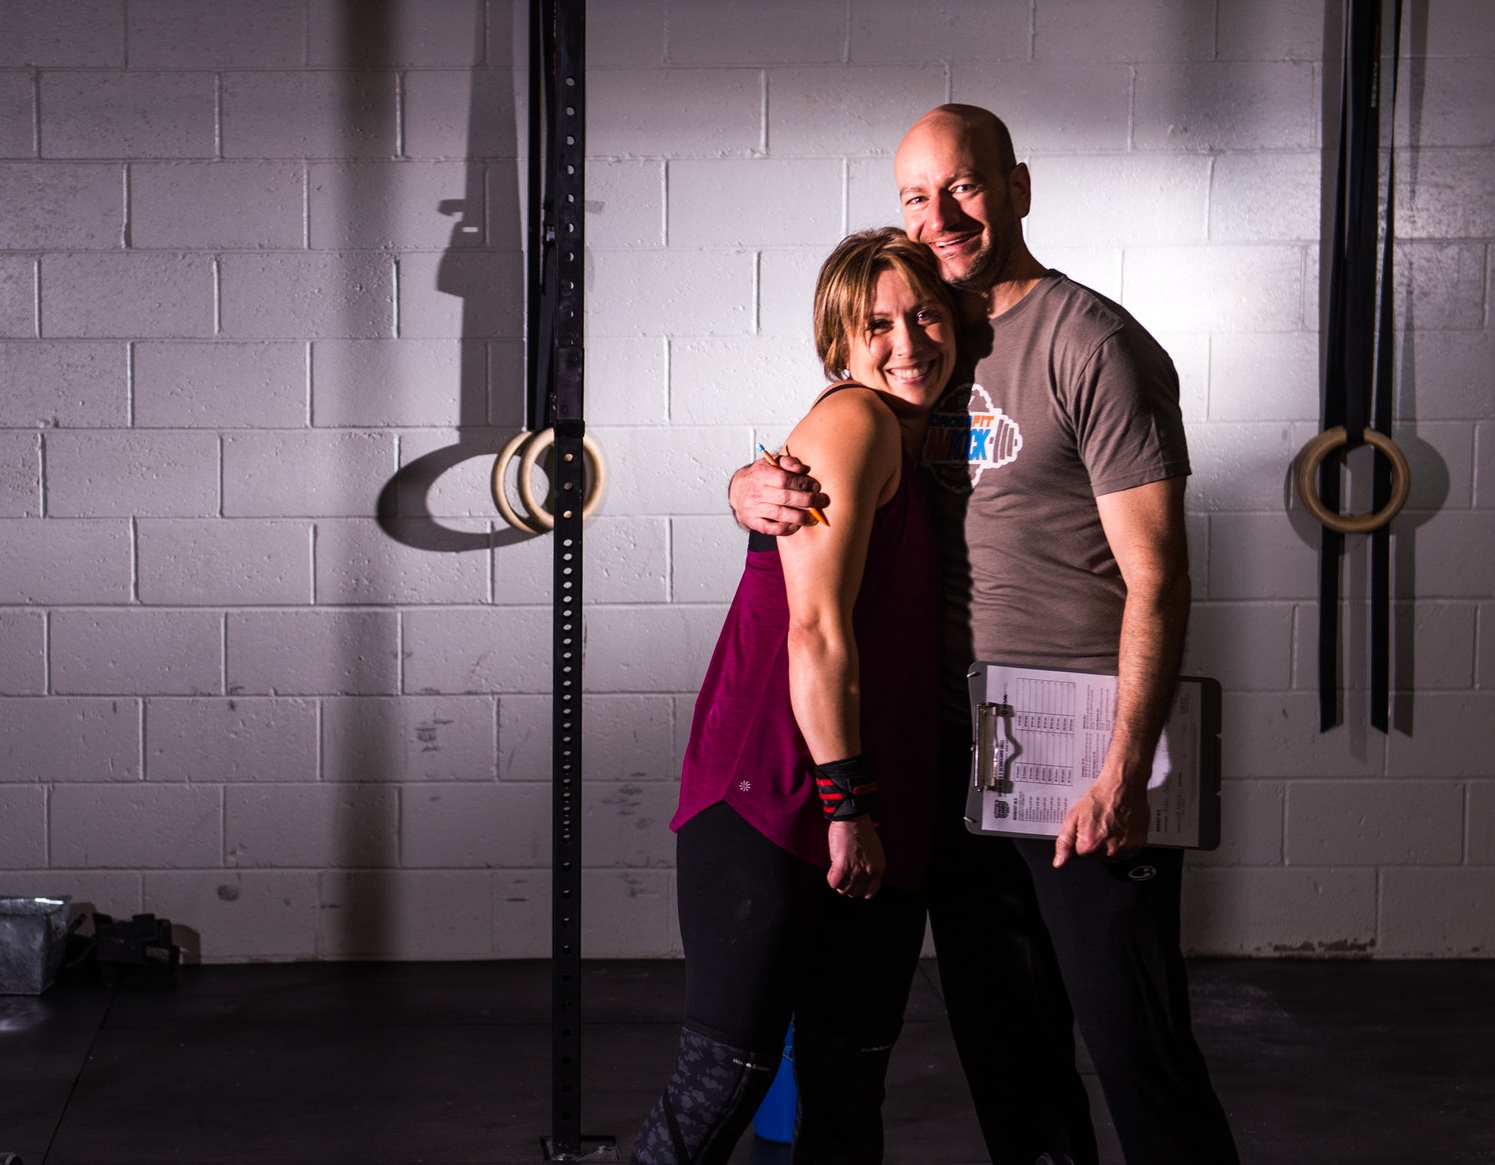 CrossFit Level 2 Trainer, CrossFit Gymnastics Co-owner of CrossFit AMROCK